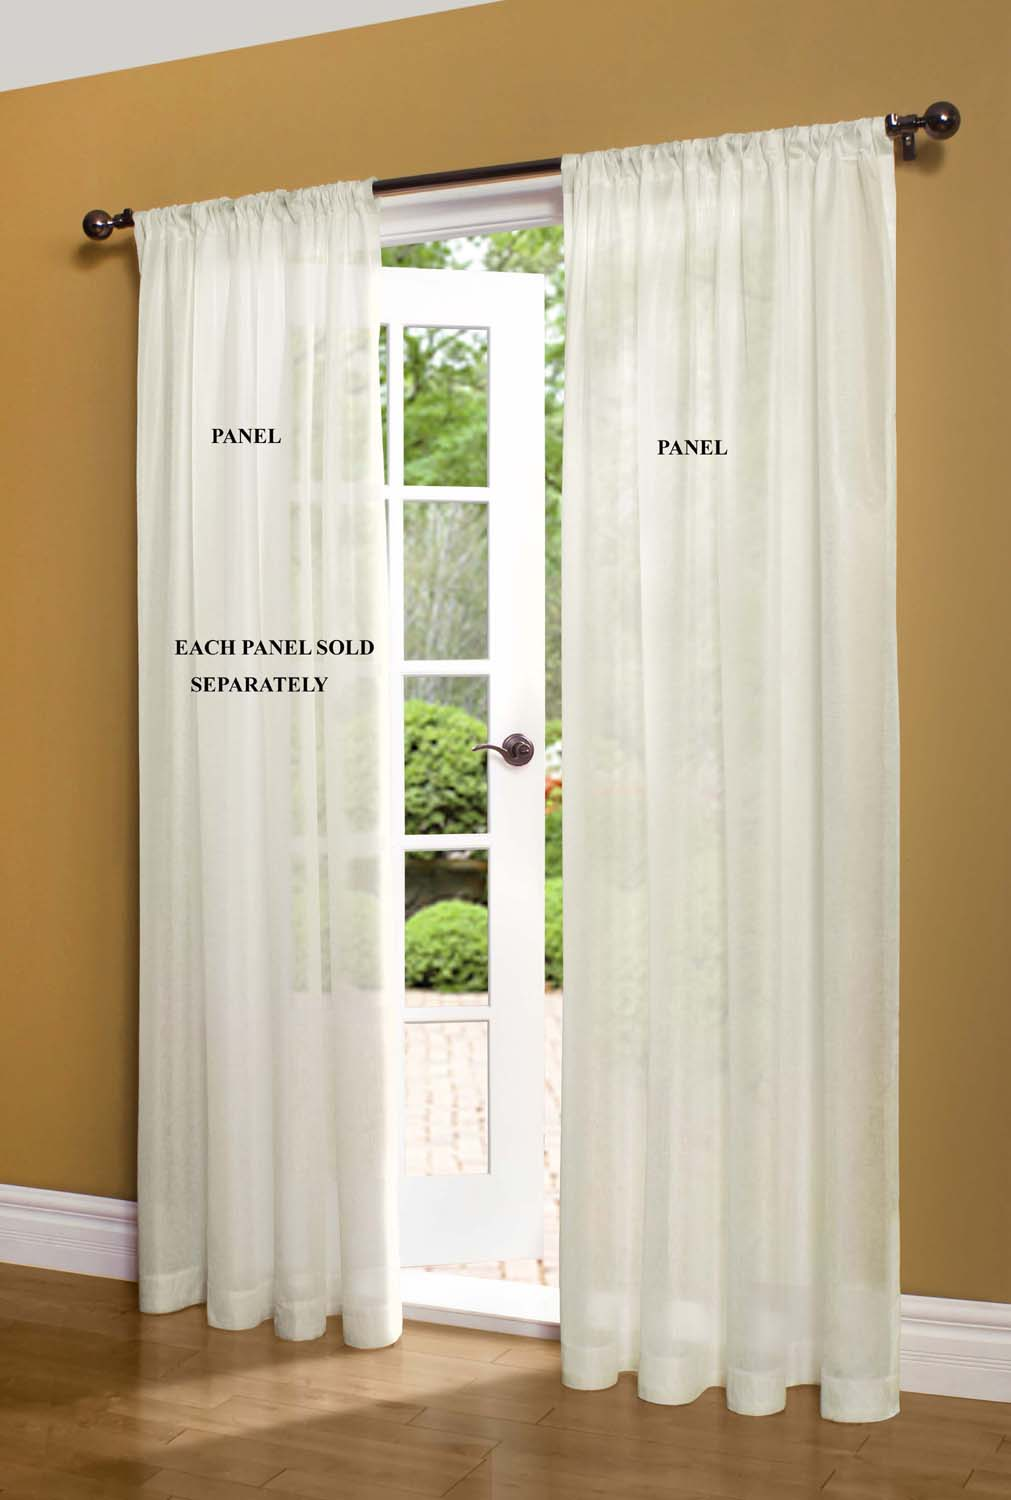 Panel Curtain Rods Sheer Curtain And Door Panels Sheer Curtain Panels At